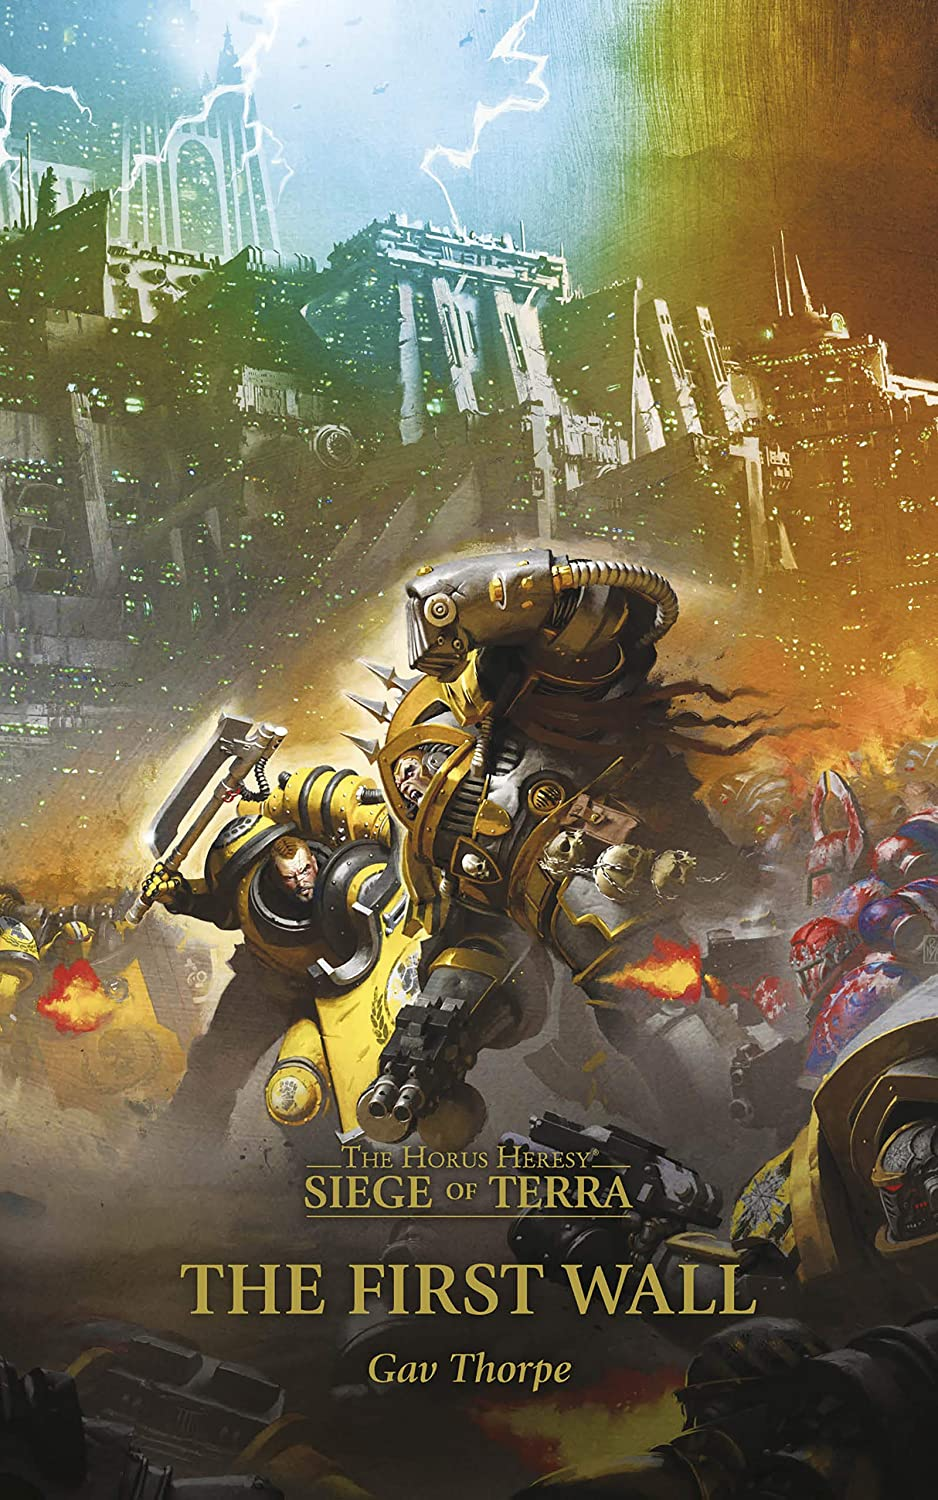 The First Wall - (The Horus Heresy The Siege of Terra) - Gav Thorpe